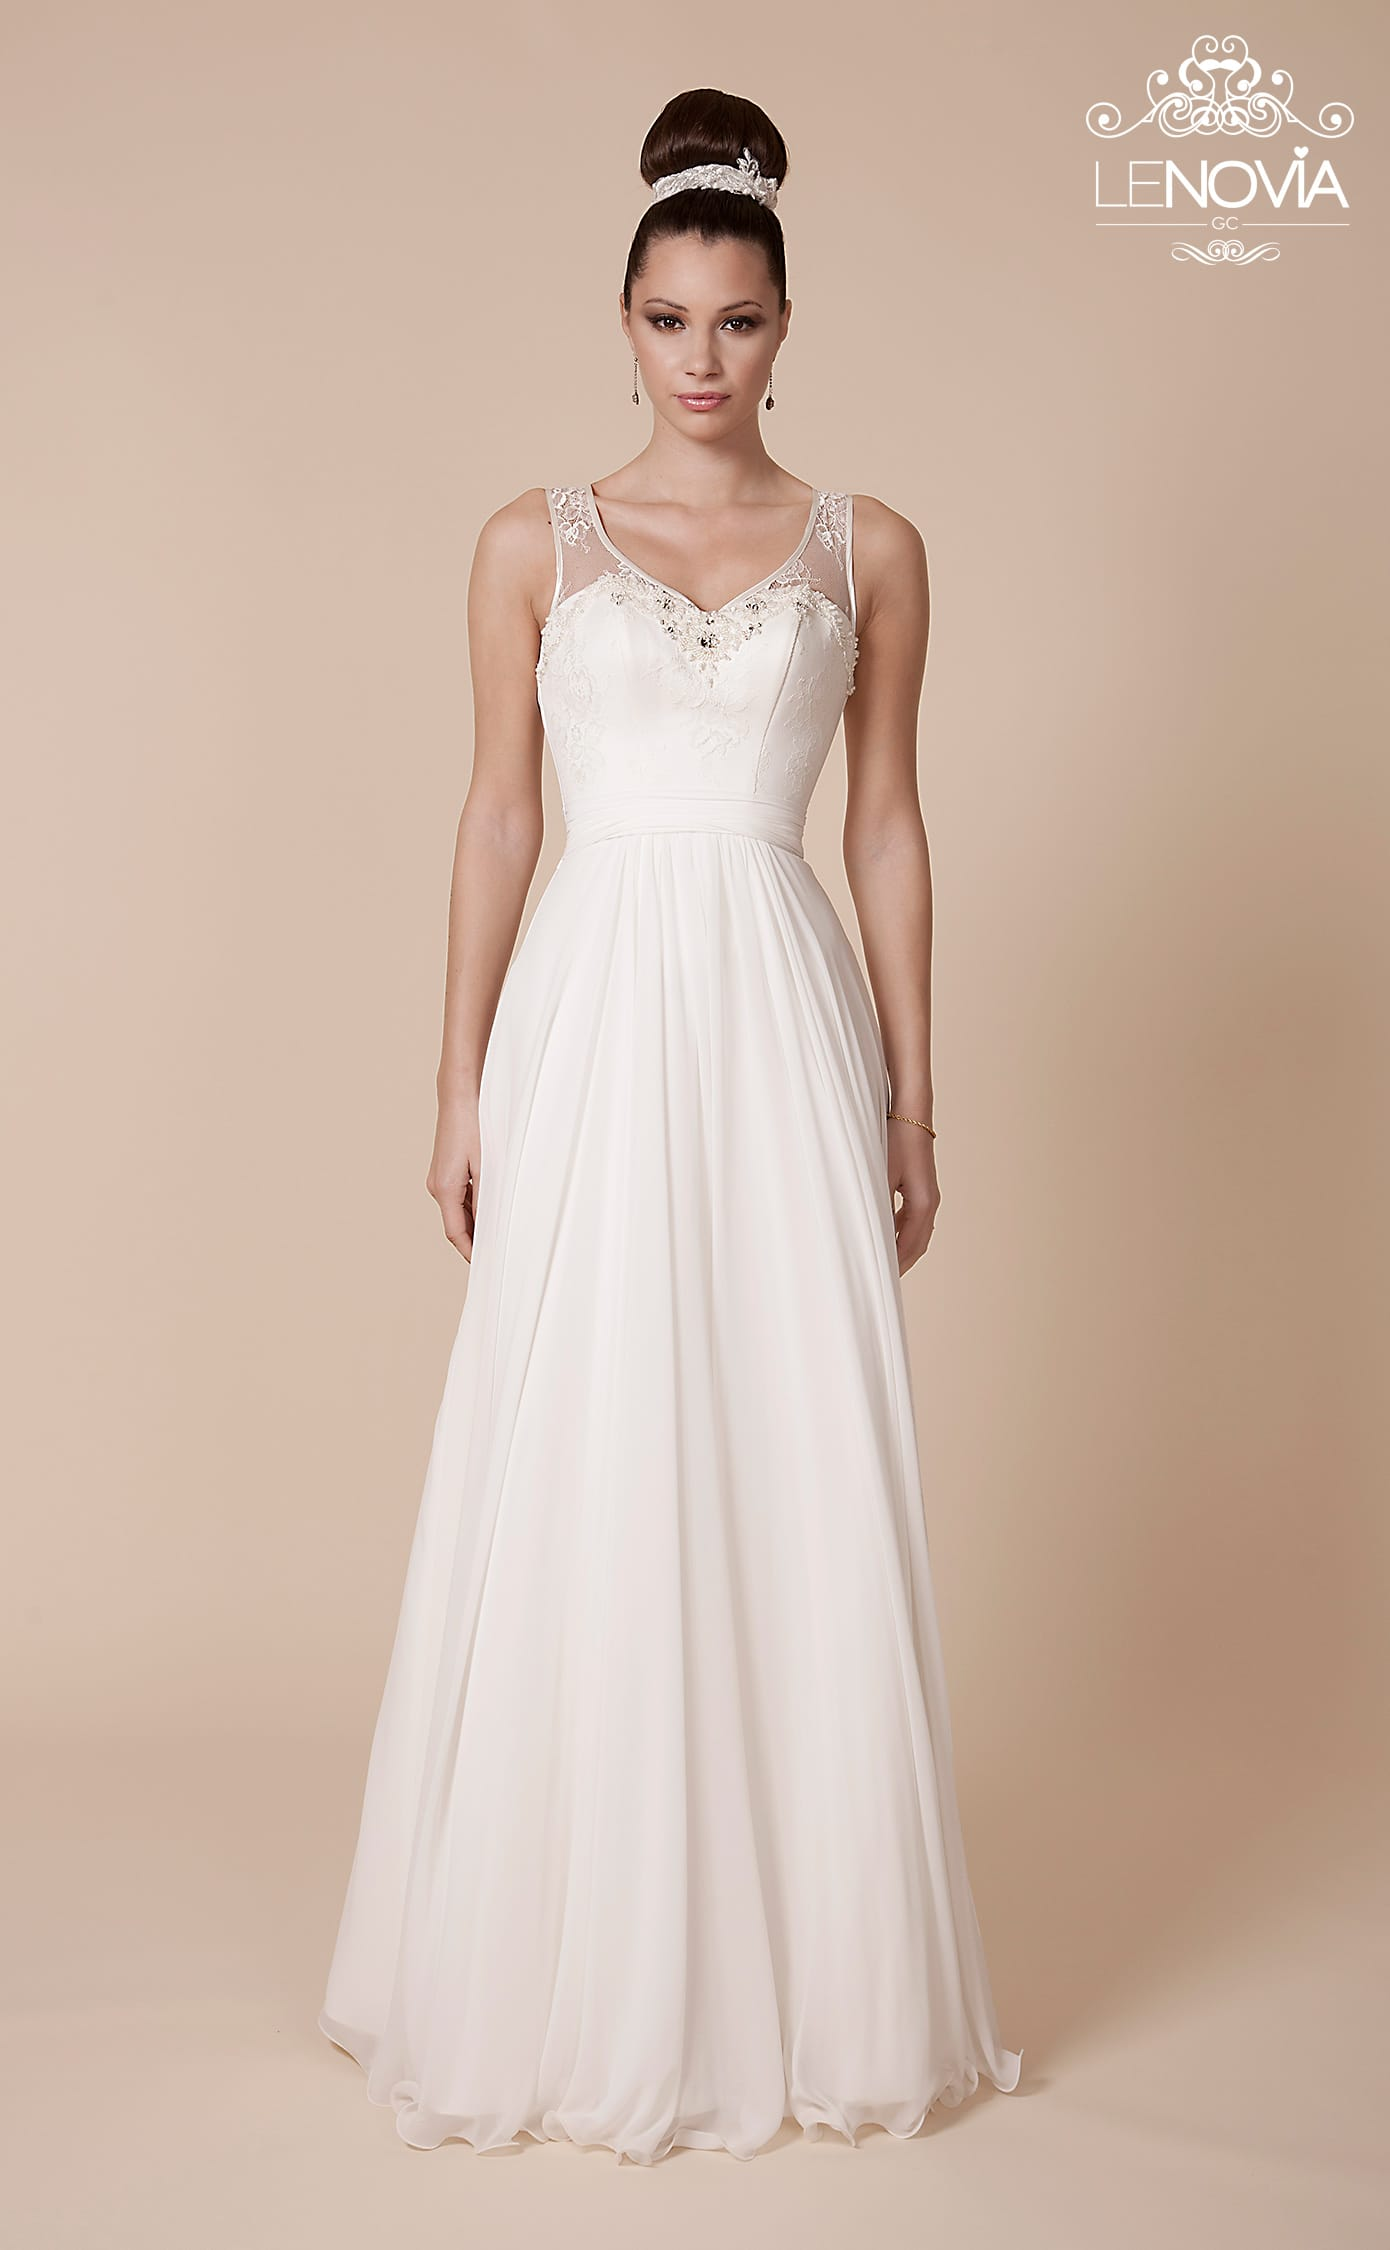 Lenovia sell my wedding dress online sell my wedding for Sell wedding dress for free